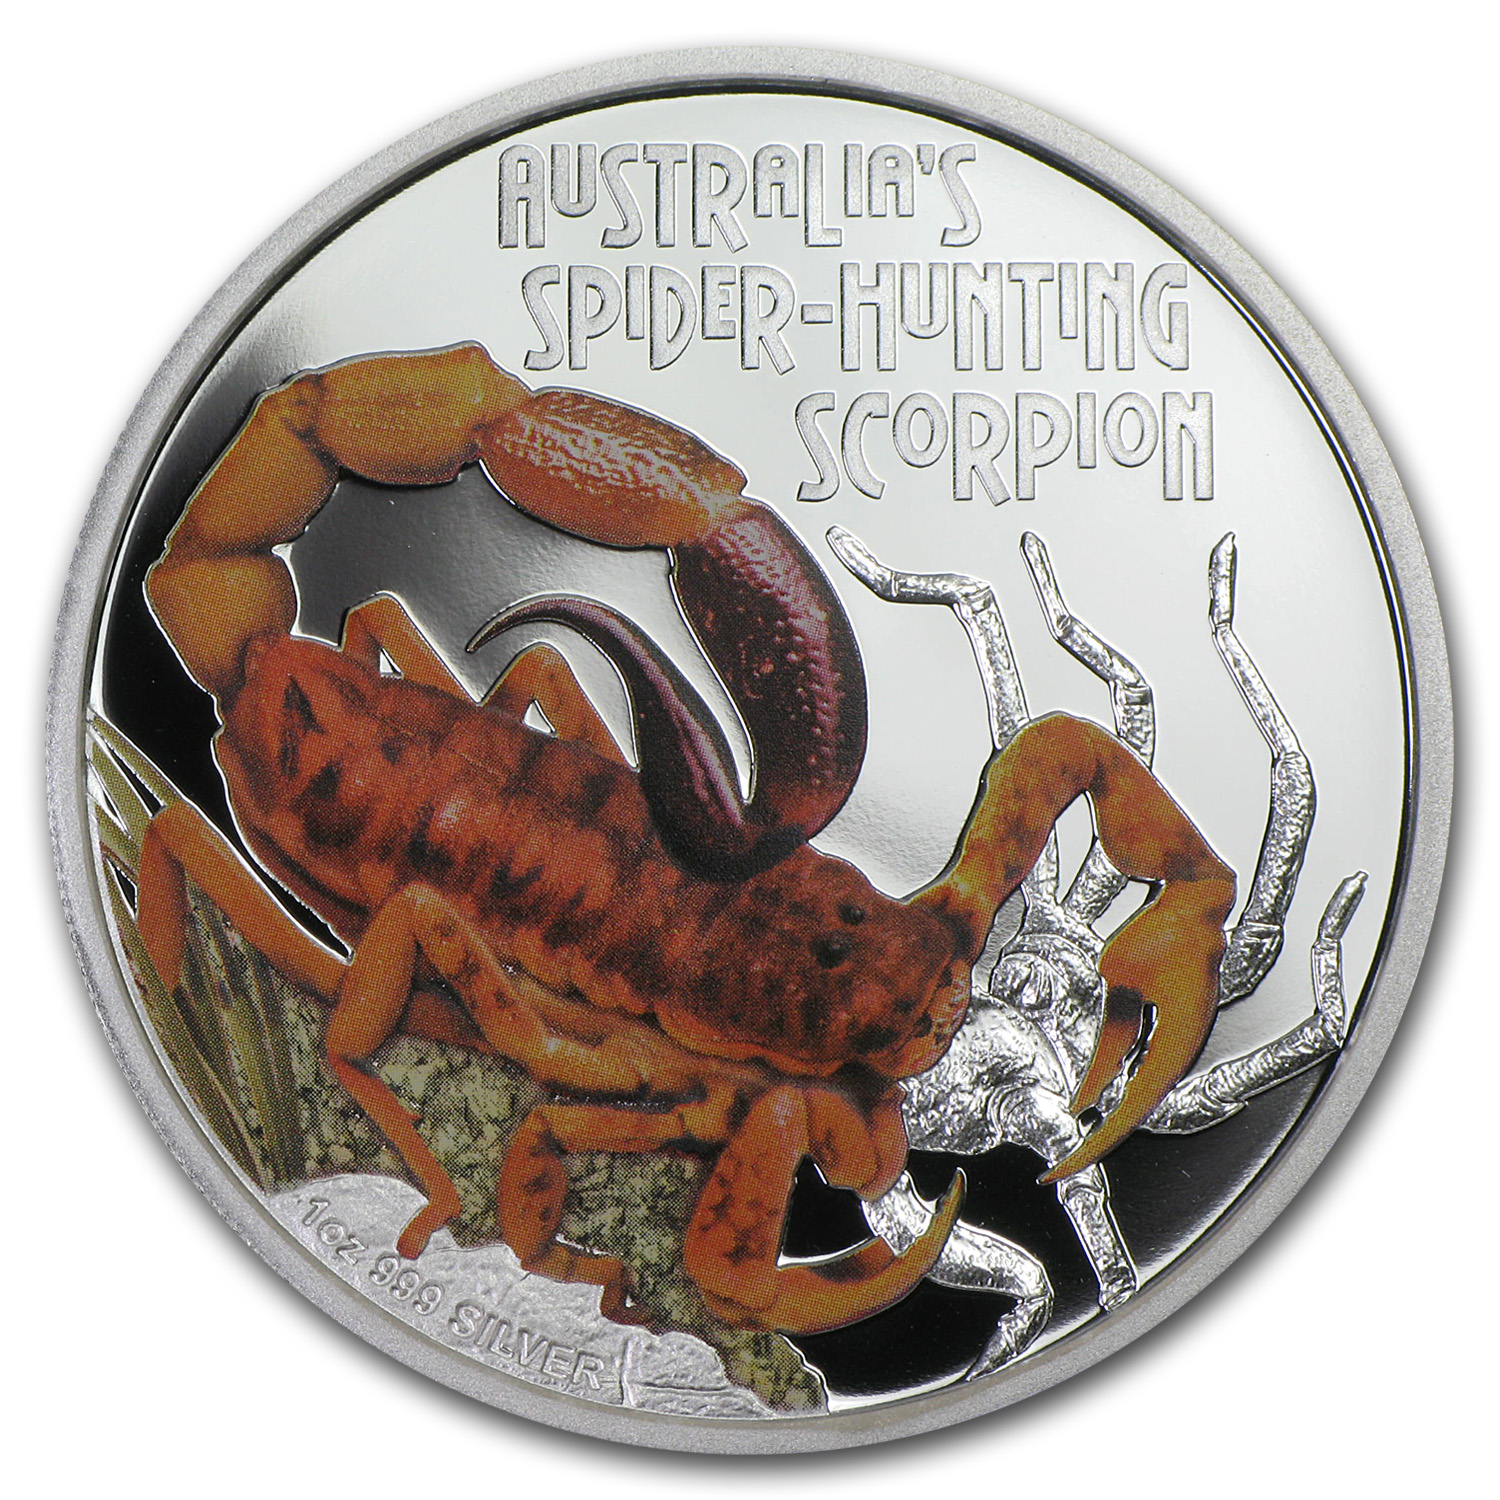 2014 1 oz Pf Silver Spider Hunting Scorpion - Deadly & Dangerous